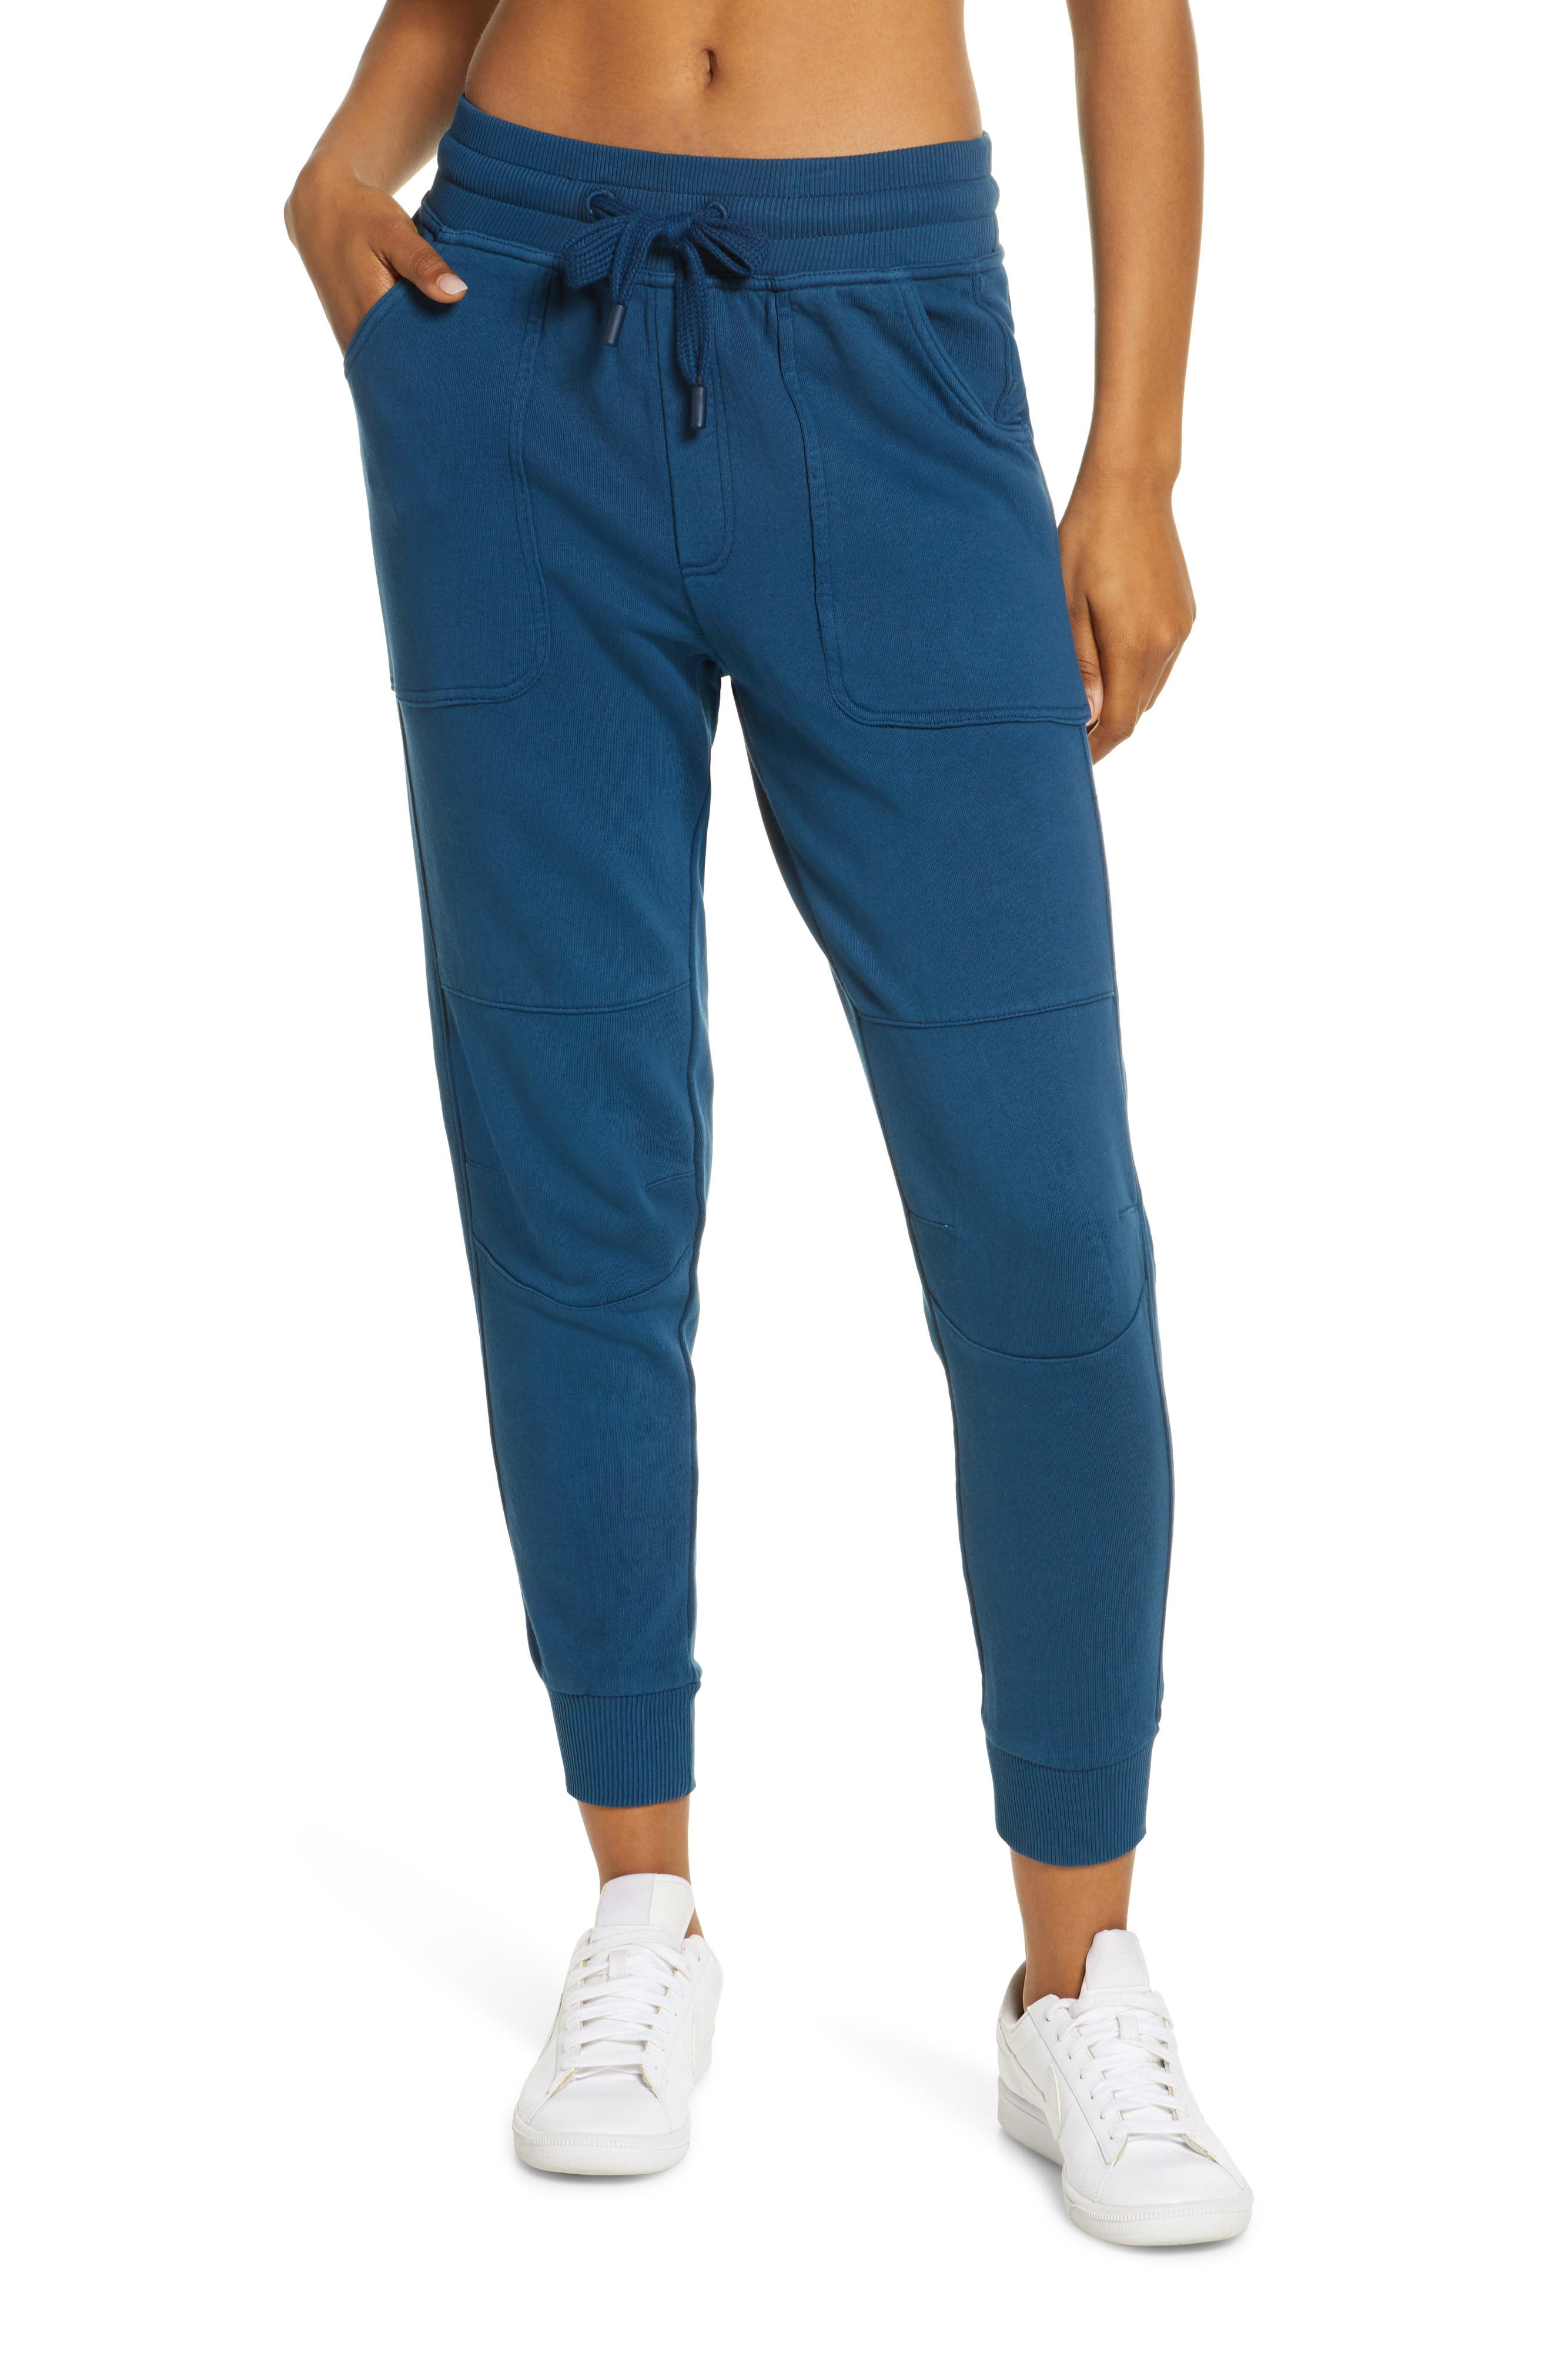 Moto-inspired panels at the knees update comfy joggers in supersoft cotton. Style Name: Zella Rudi Moto Jogger Pants. Style Number: 5967830 1. Available in stores.